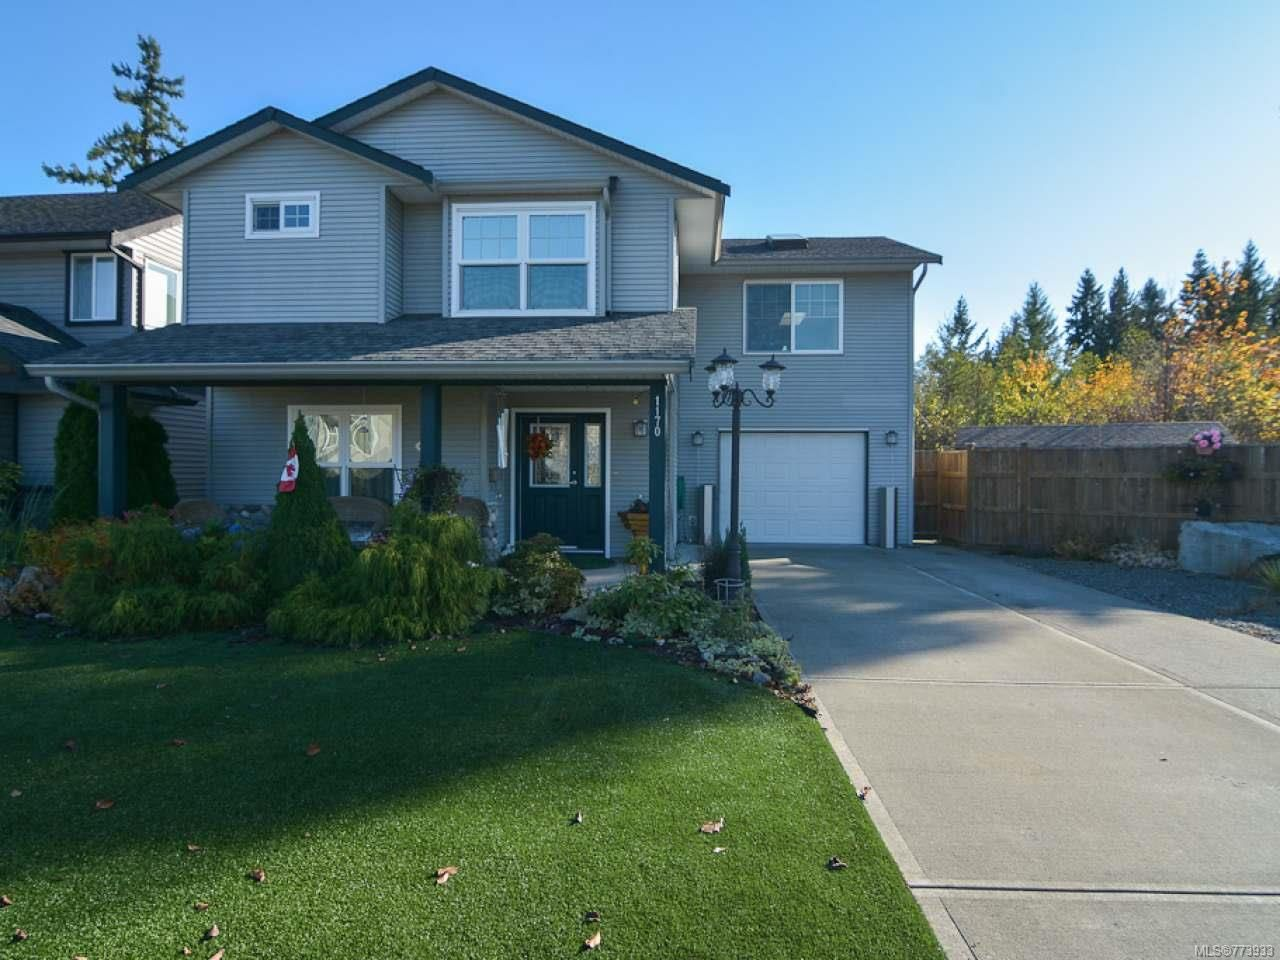 Main Photo: 1170 HORNBY PLACE in COURTENAY: CV Courtenay City House for sale (Comox Valley)  : MLS®# 773933